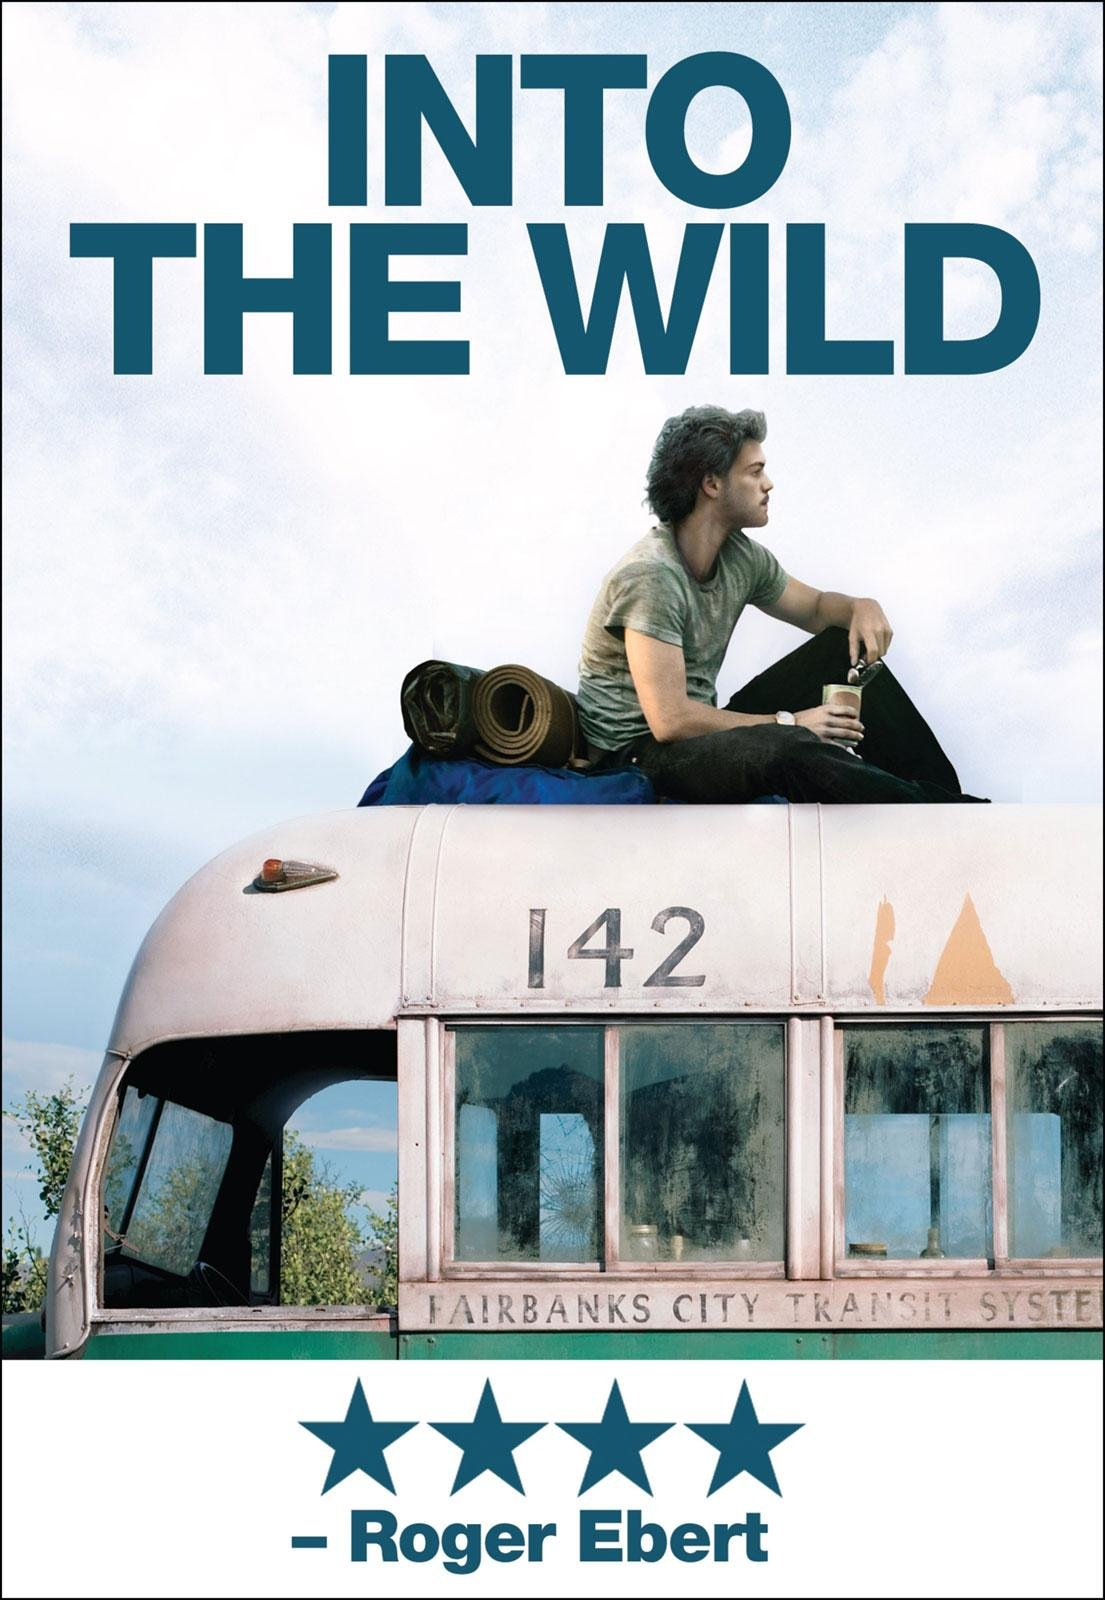 Emile Hirsch in Into The Wild.  Image source: Amazon.com